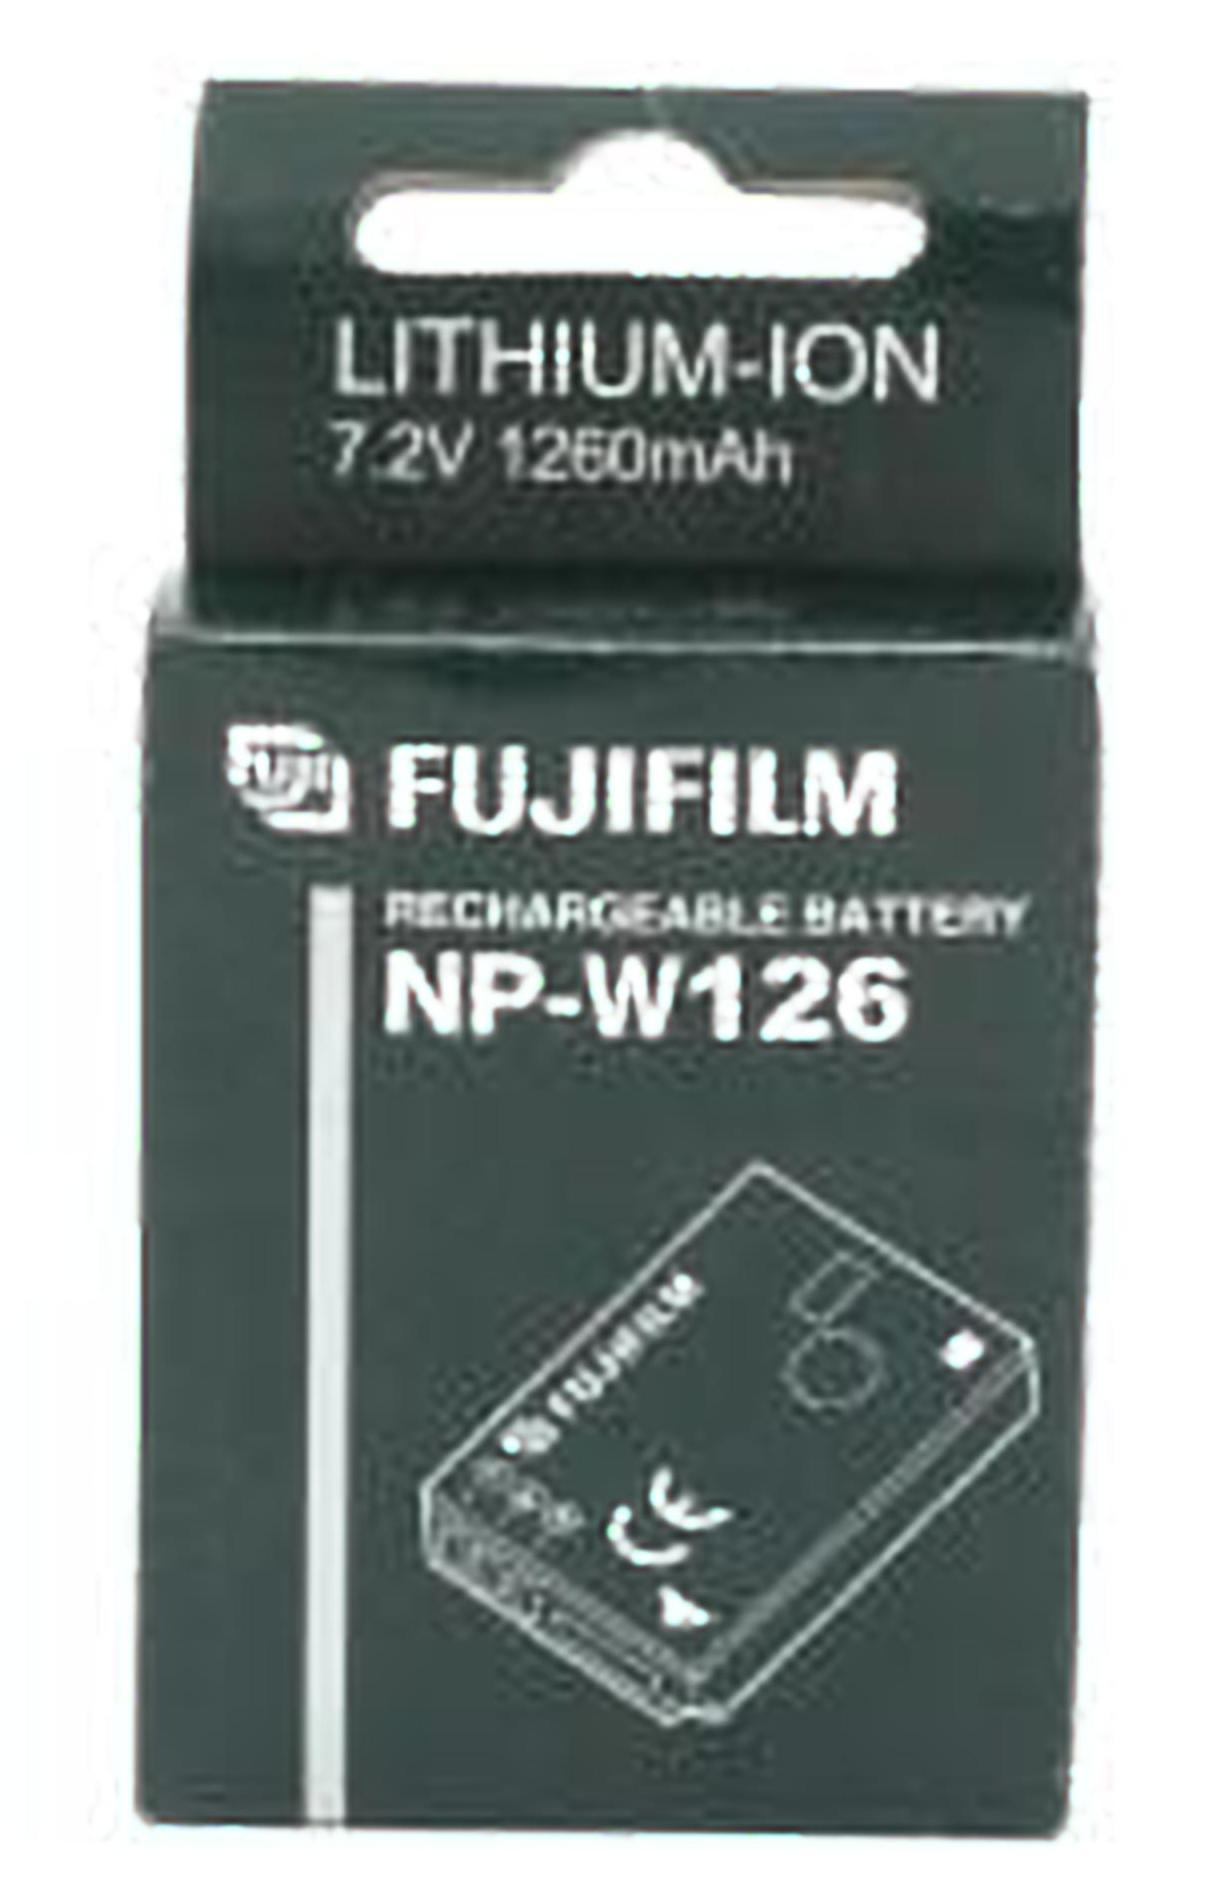 Fujifilm Philippines Camera Accessories For Sale Prices Baterai Fuji Np W126 X A3 E1 Pro 1 T2 T20 With Packing E2 M1 Xt2 Mirrorless Data Cable 31200 Hong Kong Sar China Rechargeable Lithium Ion Battery Npw126